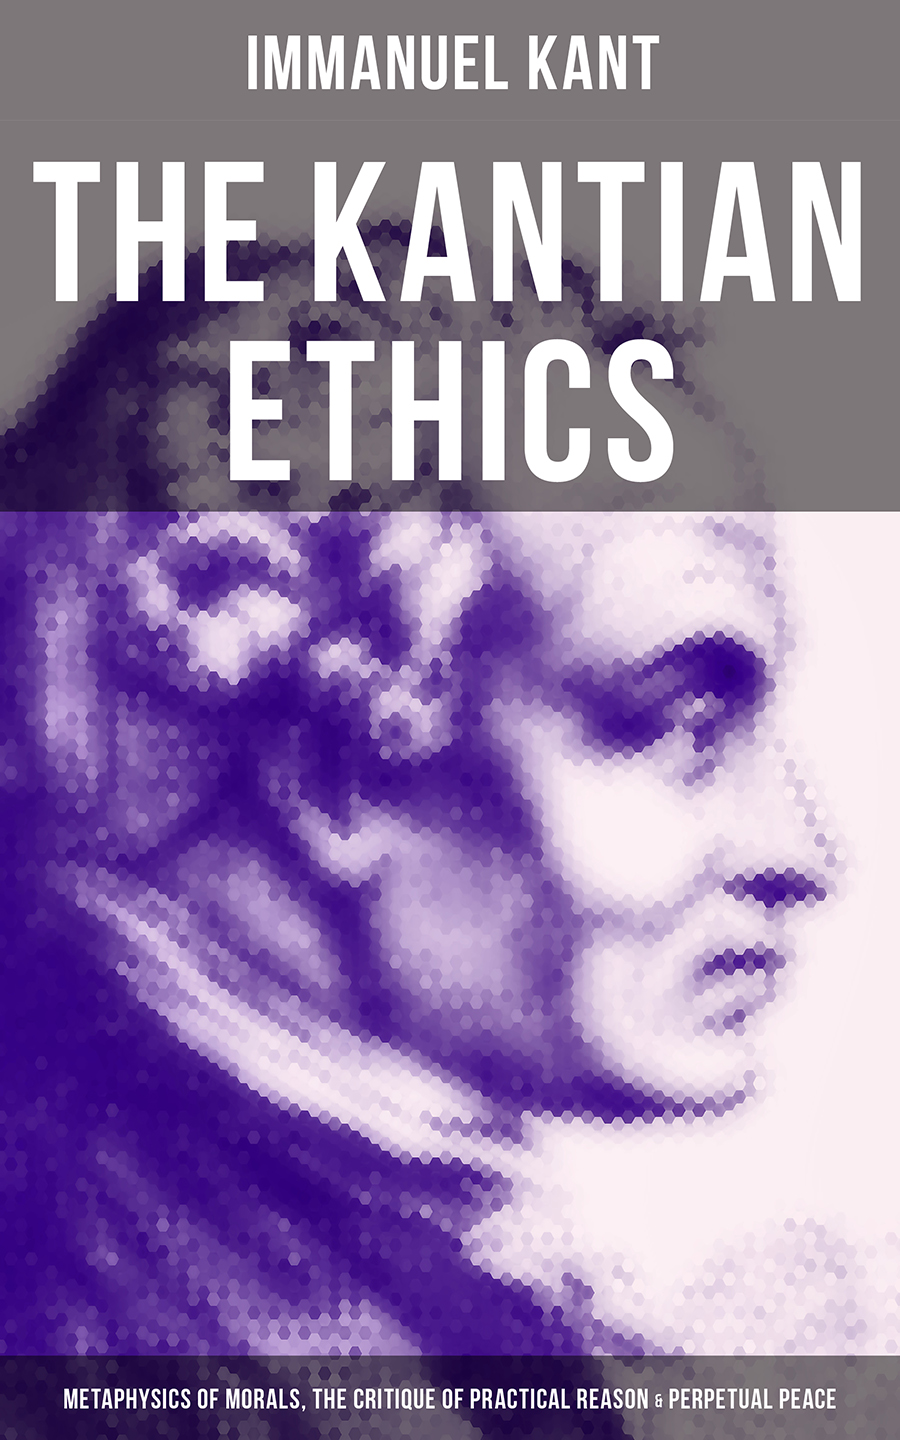 Immanuel Kant The Kantian Ethics: Metaphysics of Morals, The Critique of Practical Reason & Perpetual Peace the question of ethics paper